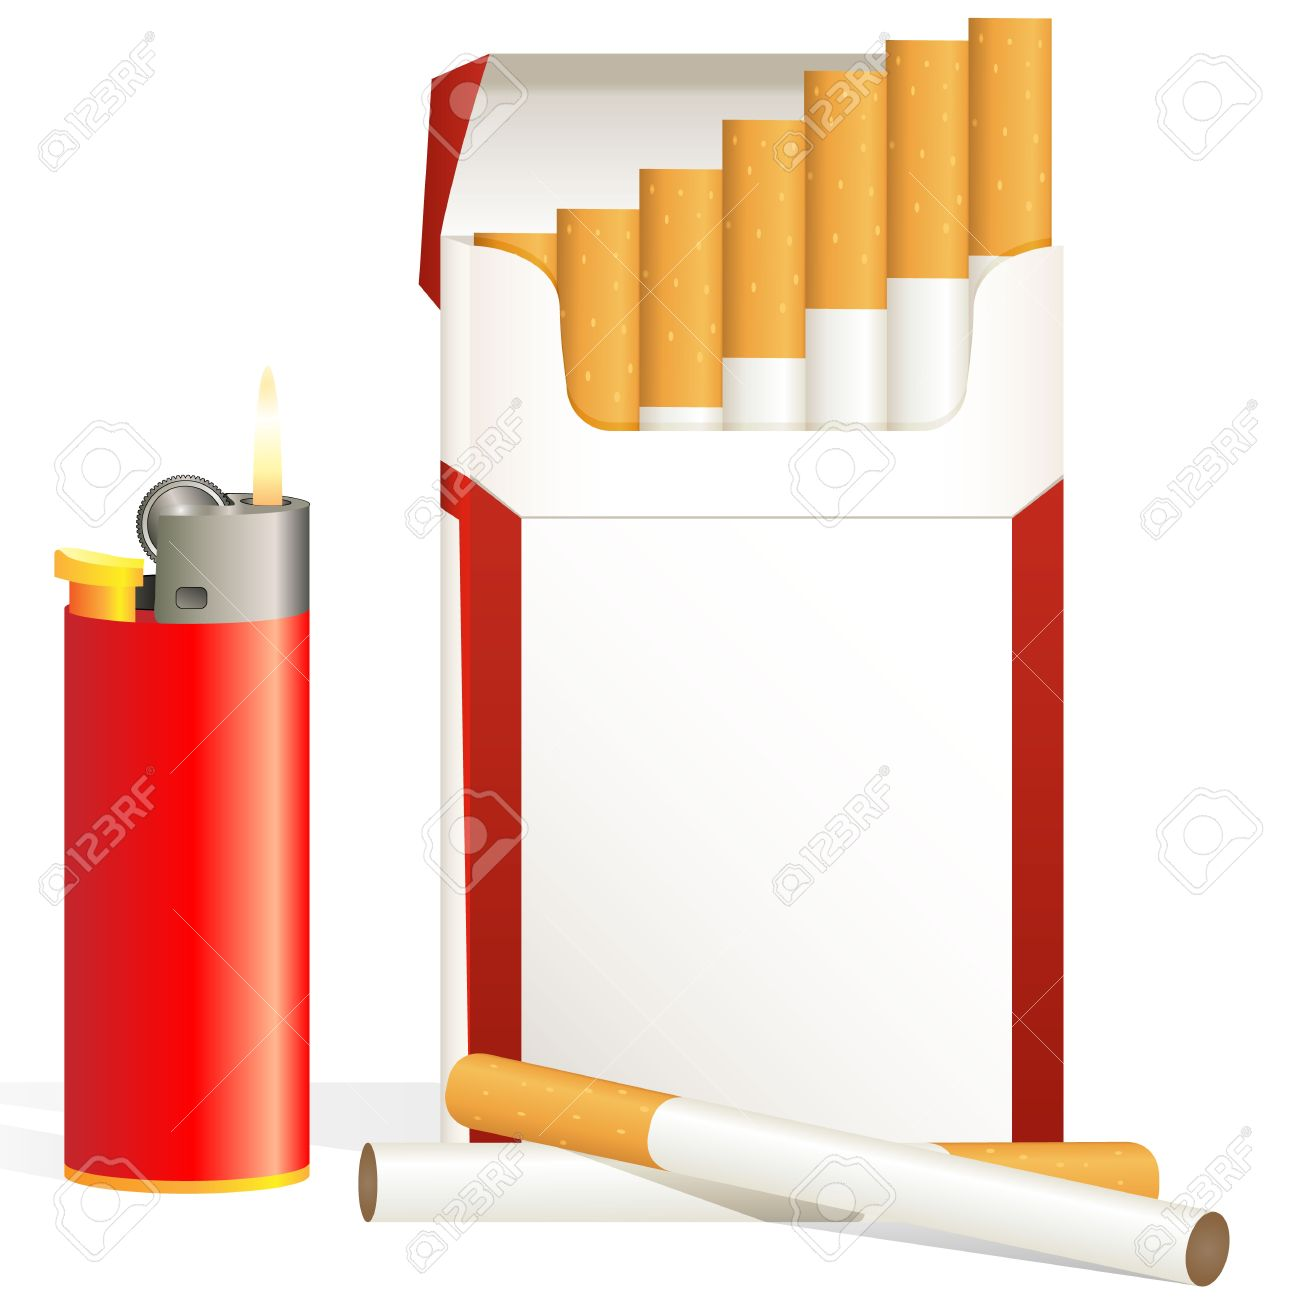 Cigarette Pack And Red Cigarette Lighter Royalty Free Cliparts.